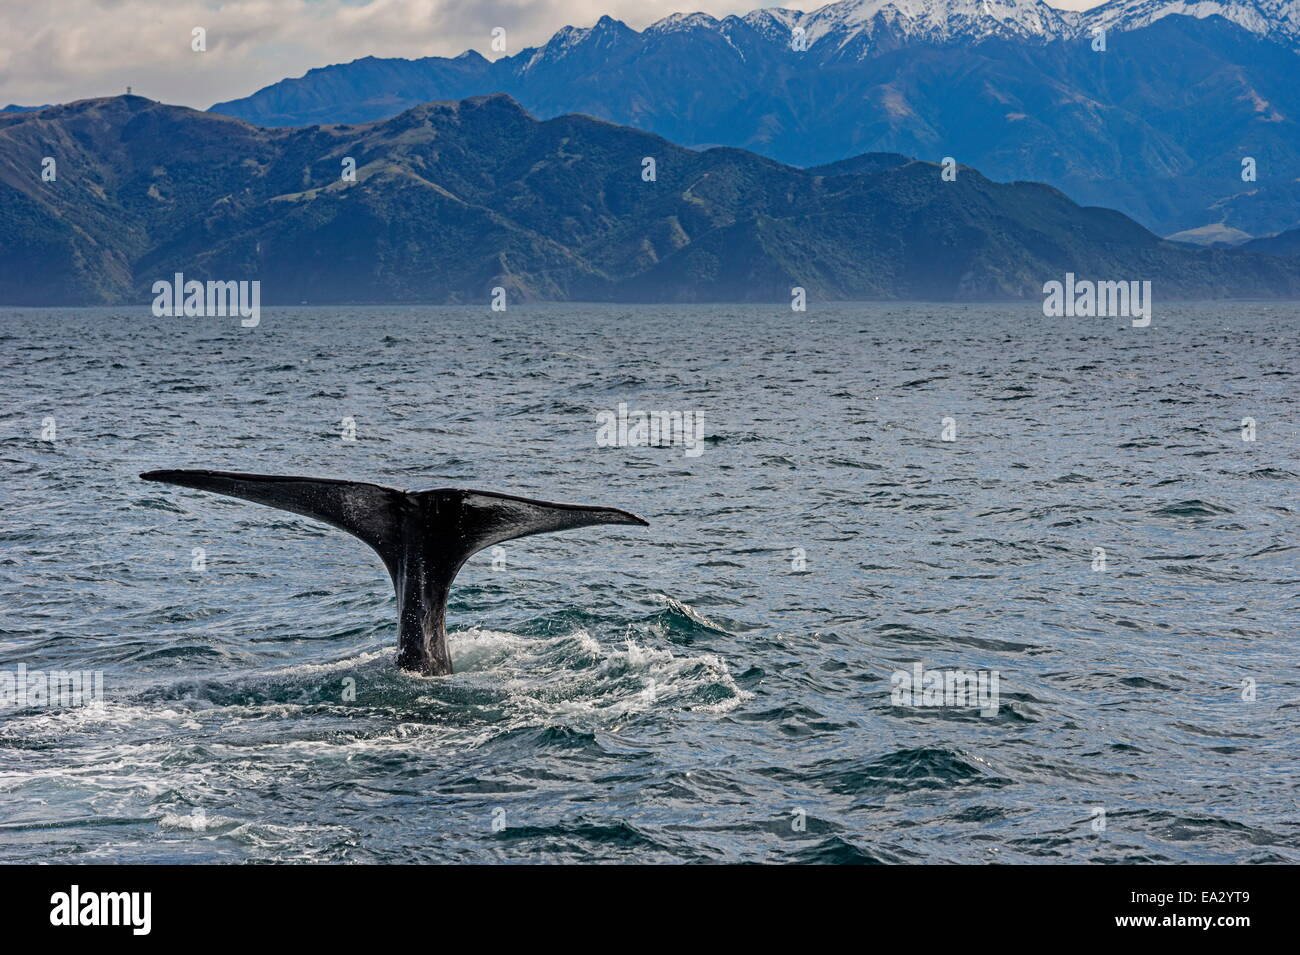 Fluke of Sperm whale diving, Kaikoura, South Island, New Zealand, Pacific - Stock Image